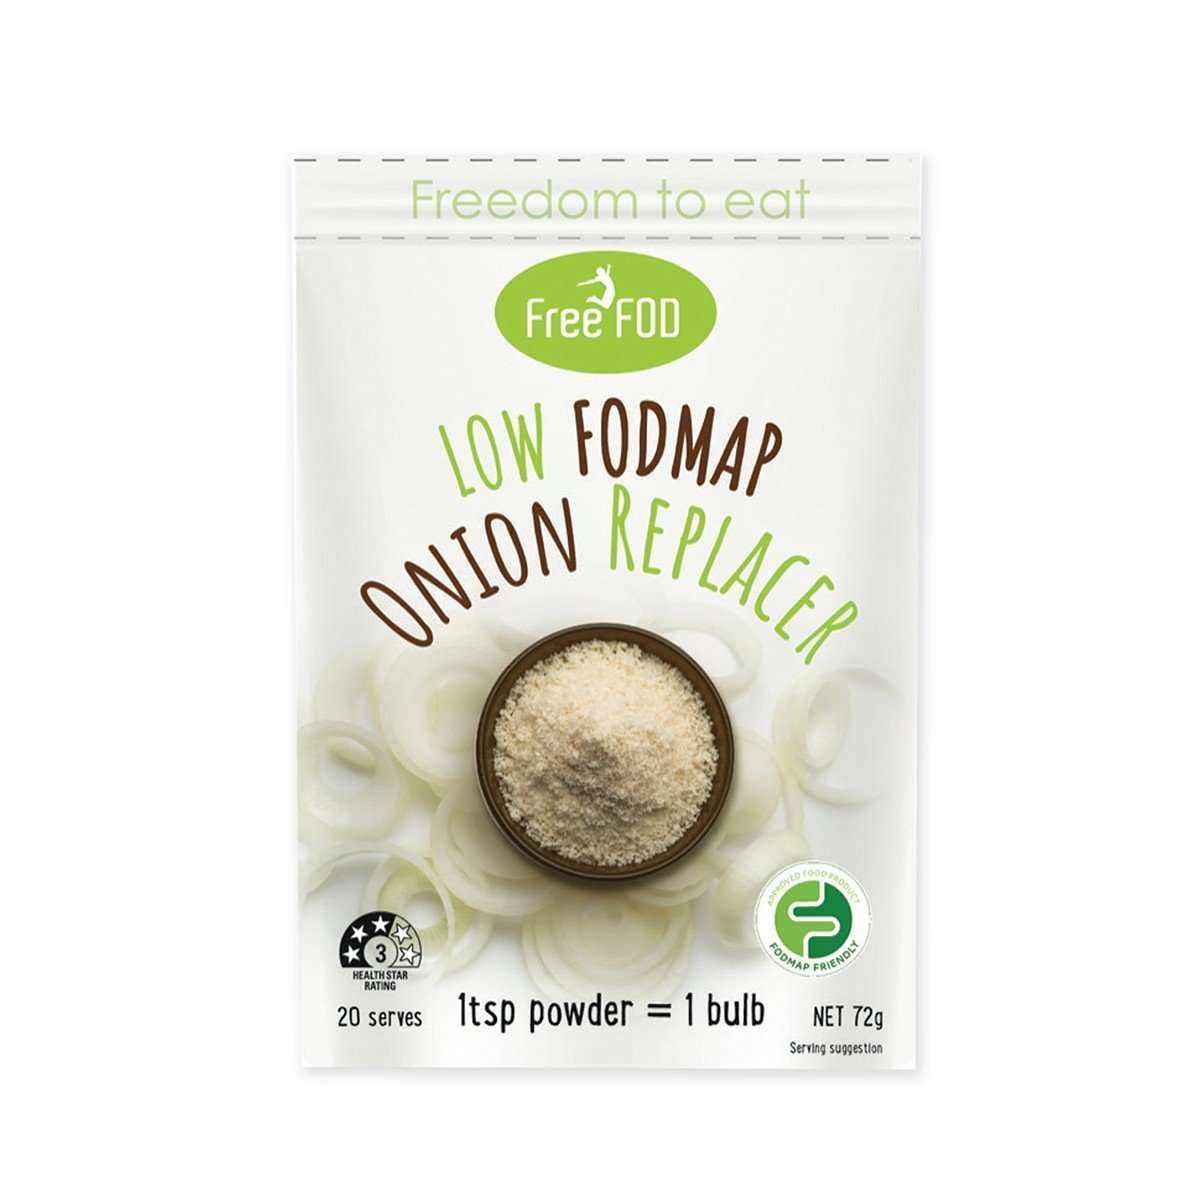 Certified Low-FODMAP Onion Replacer